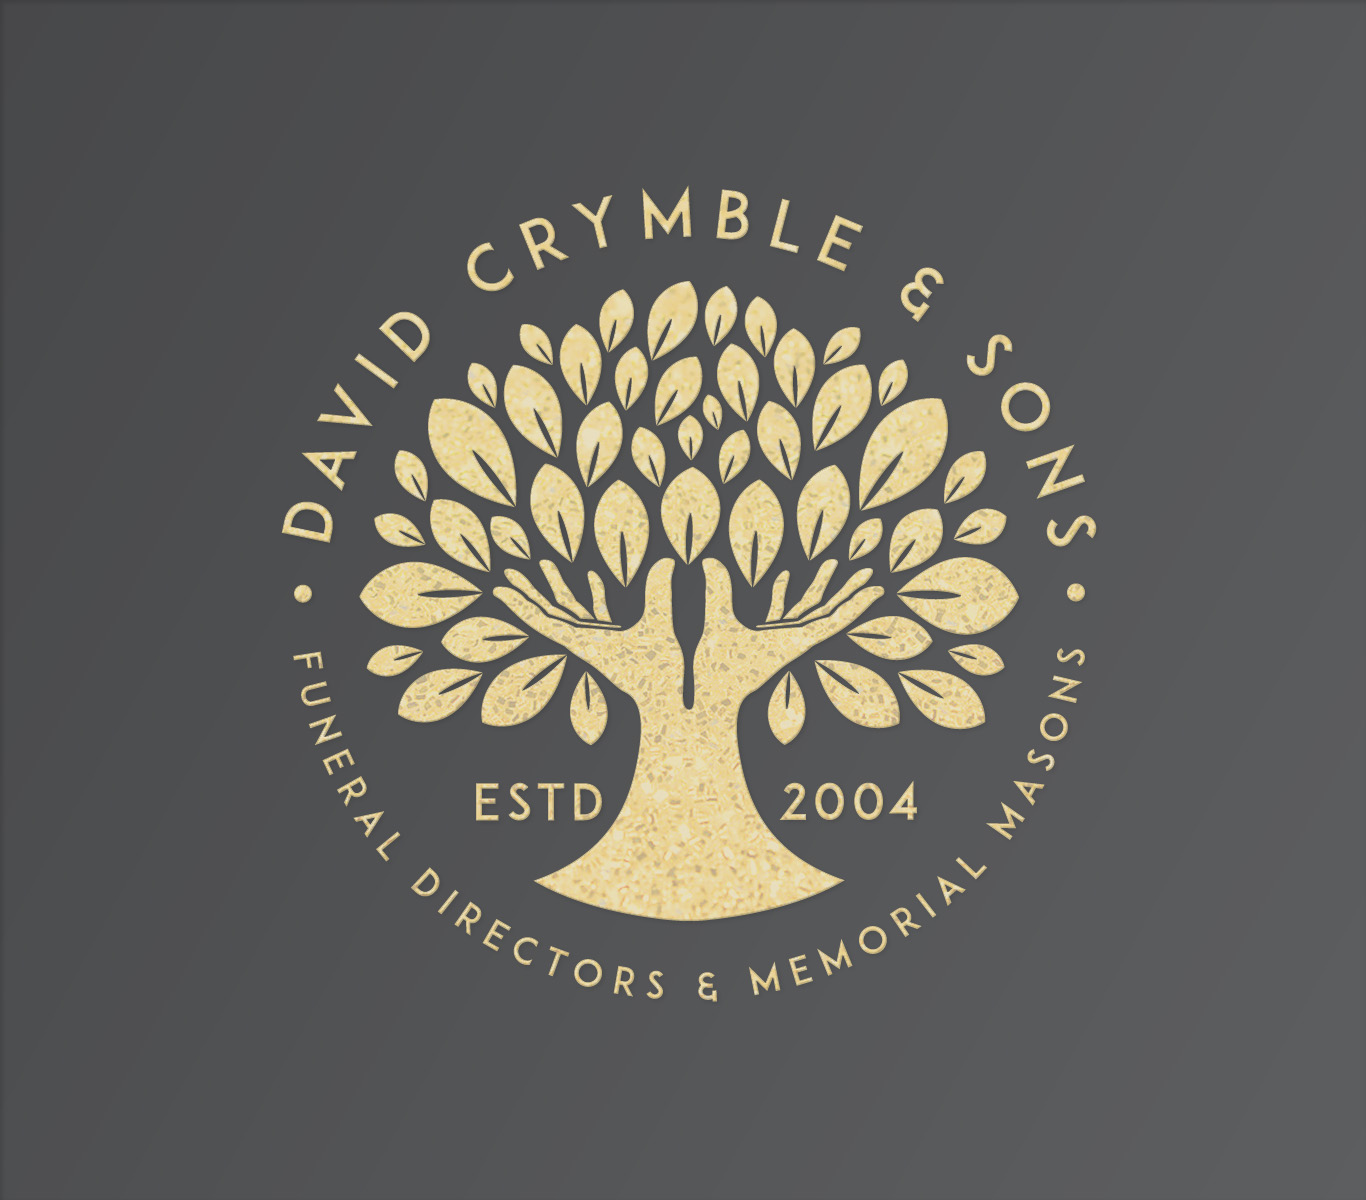 Crymble & Sons Funeral Directors